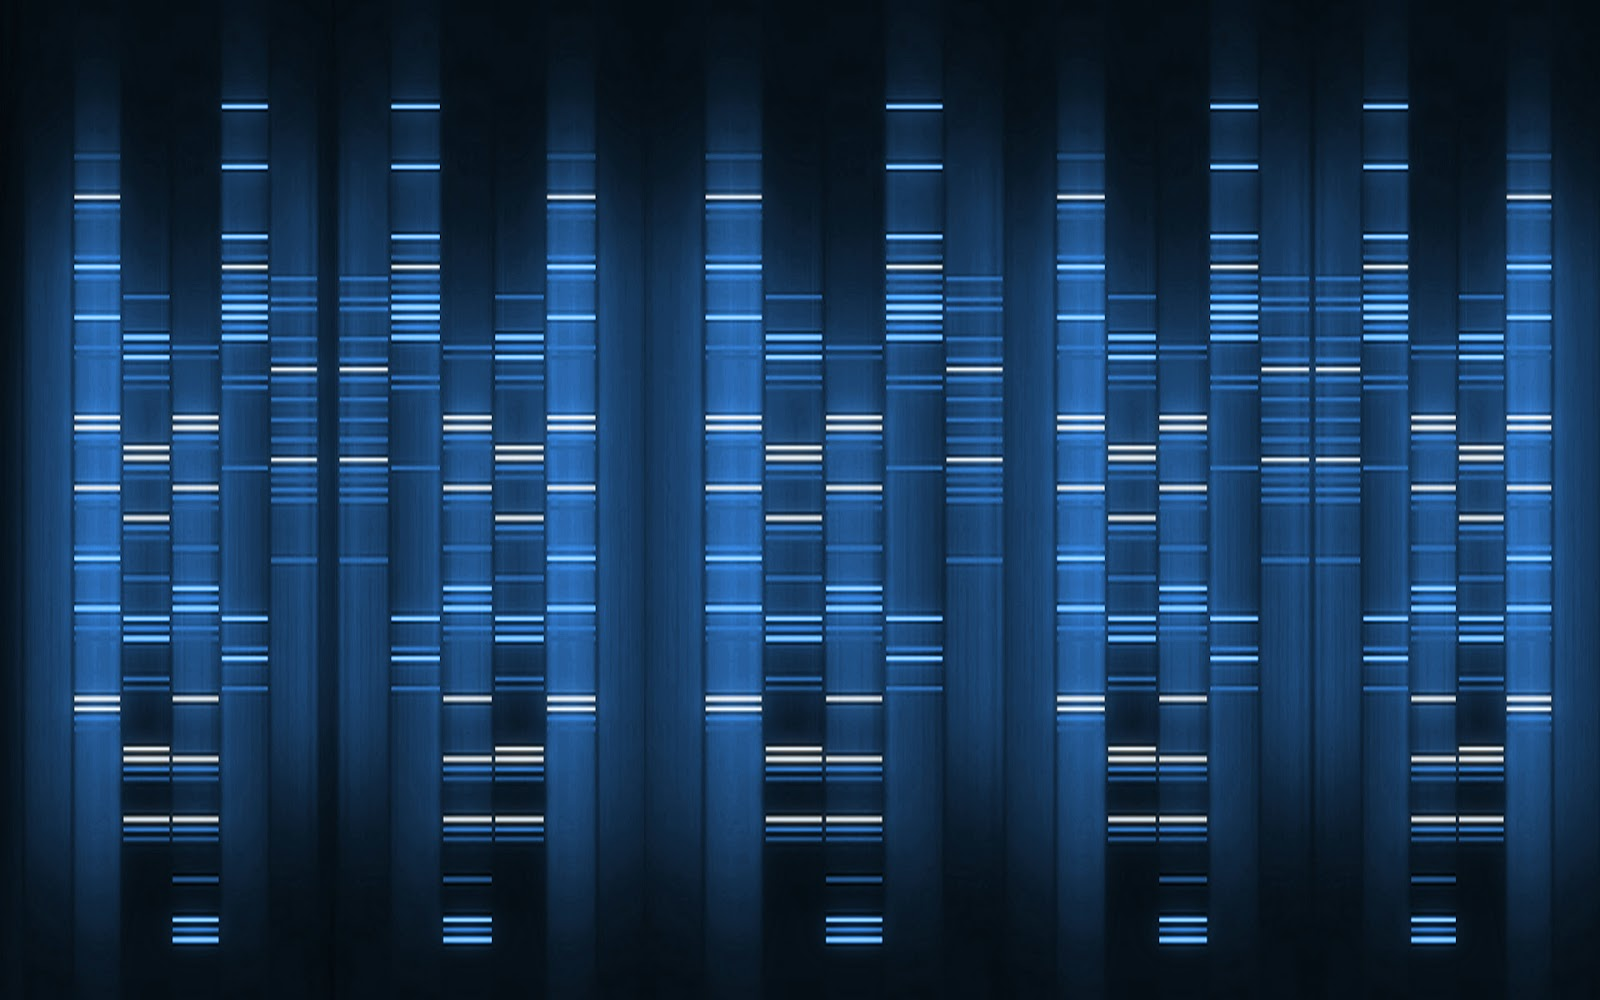 Dna Fingerprint Wallpaper Dna Fingerprint